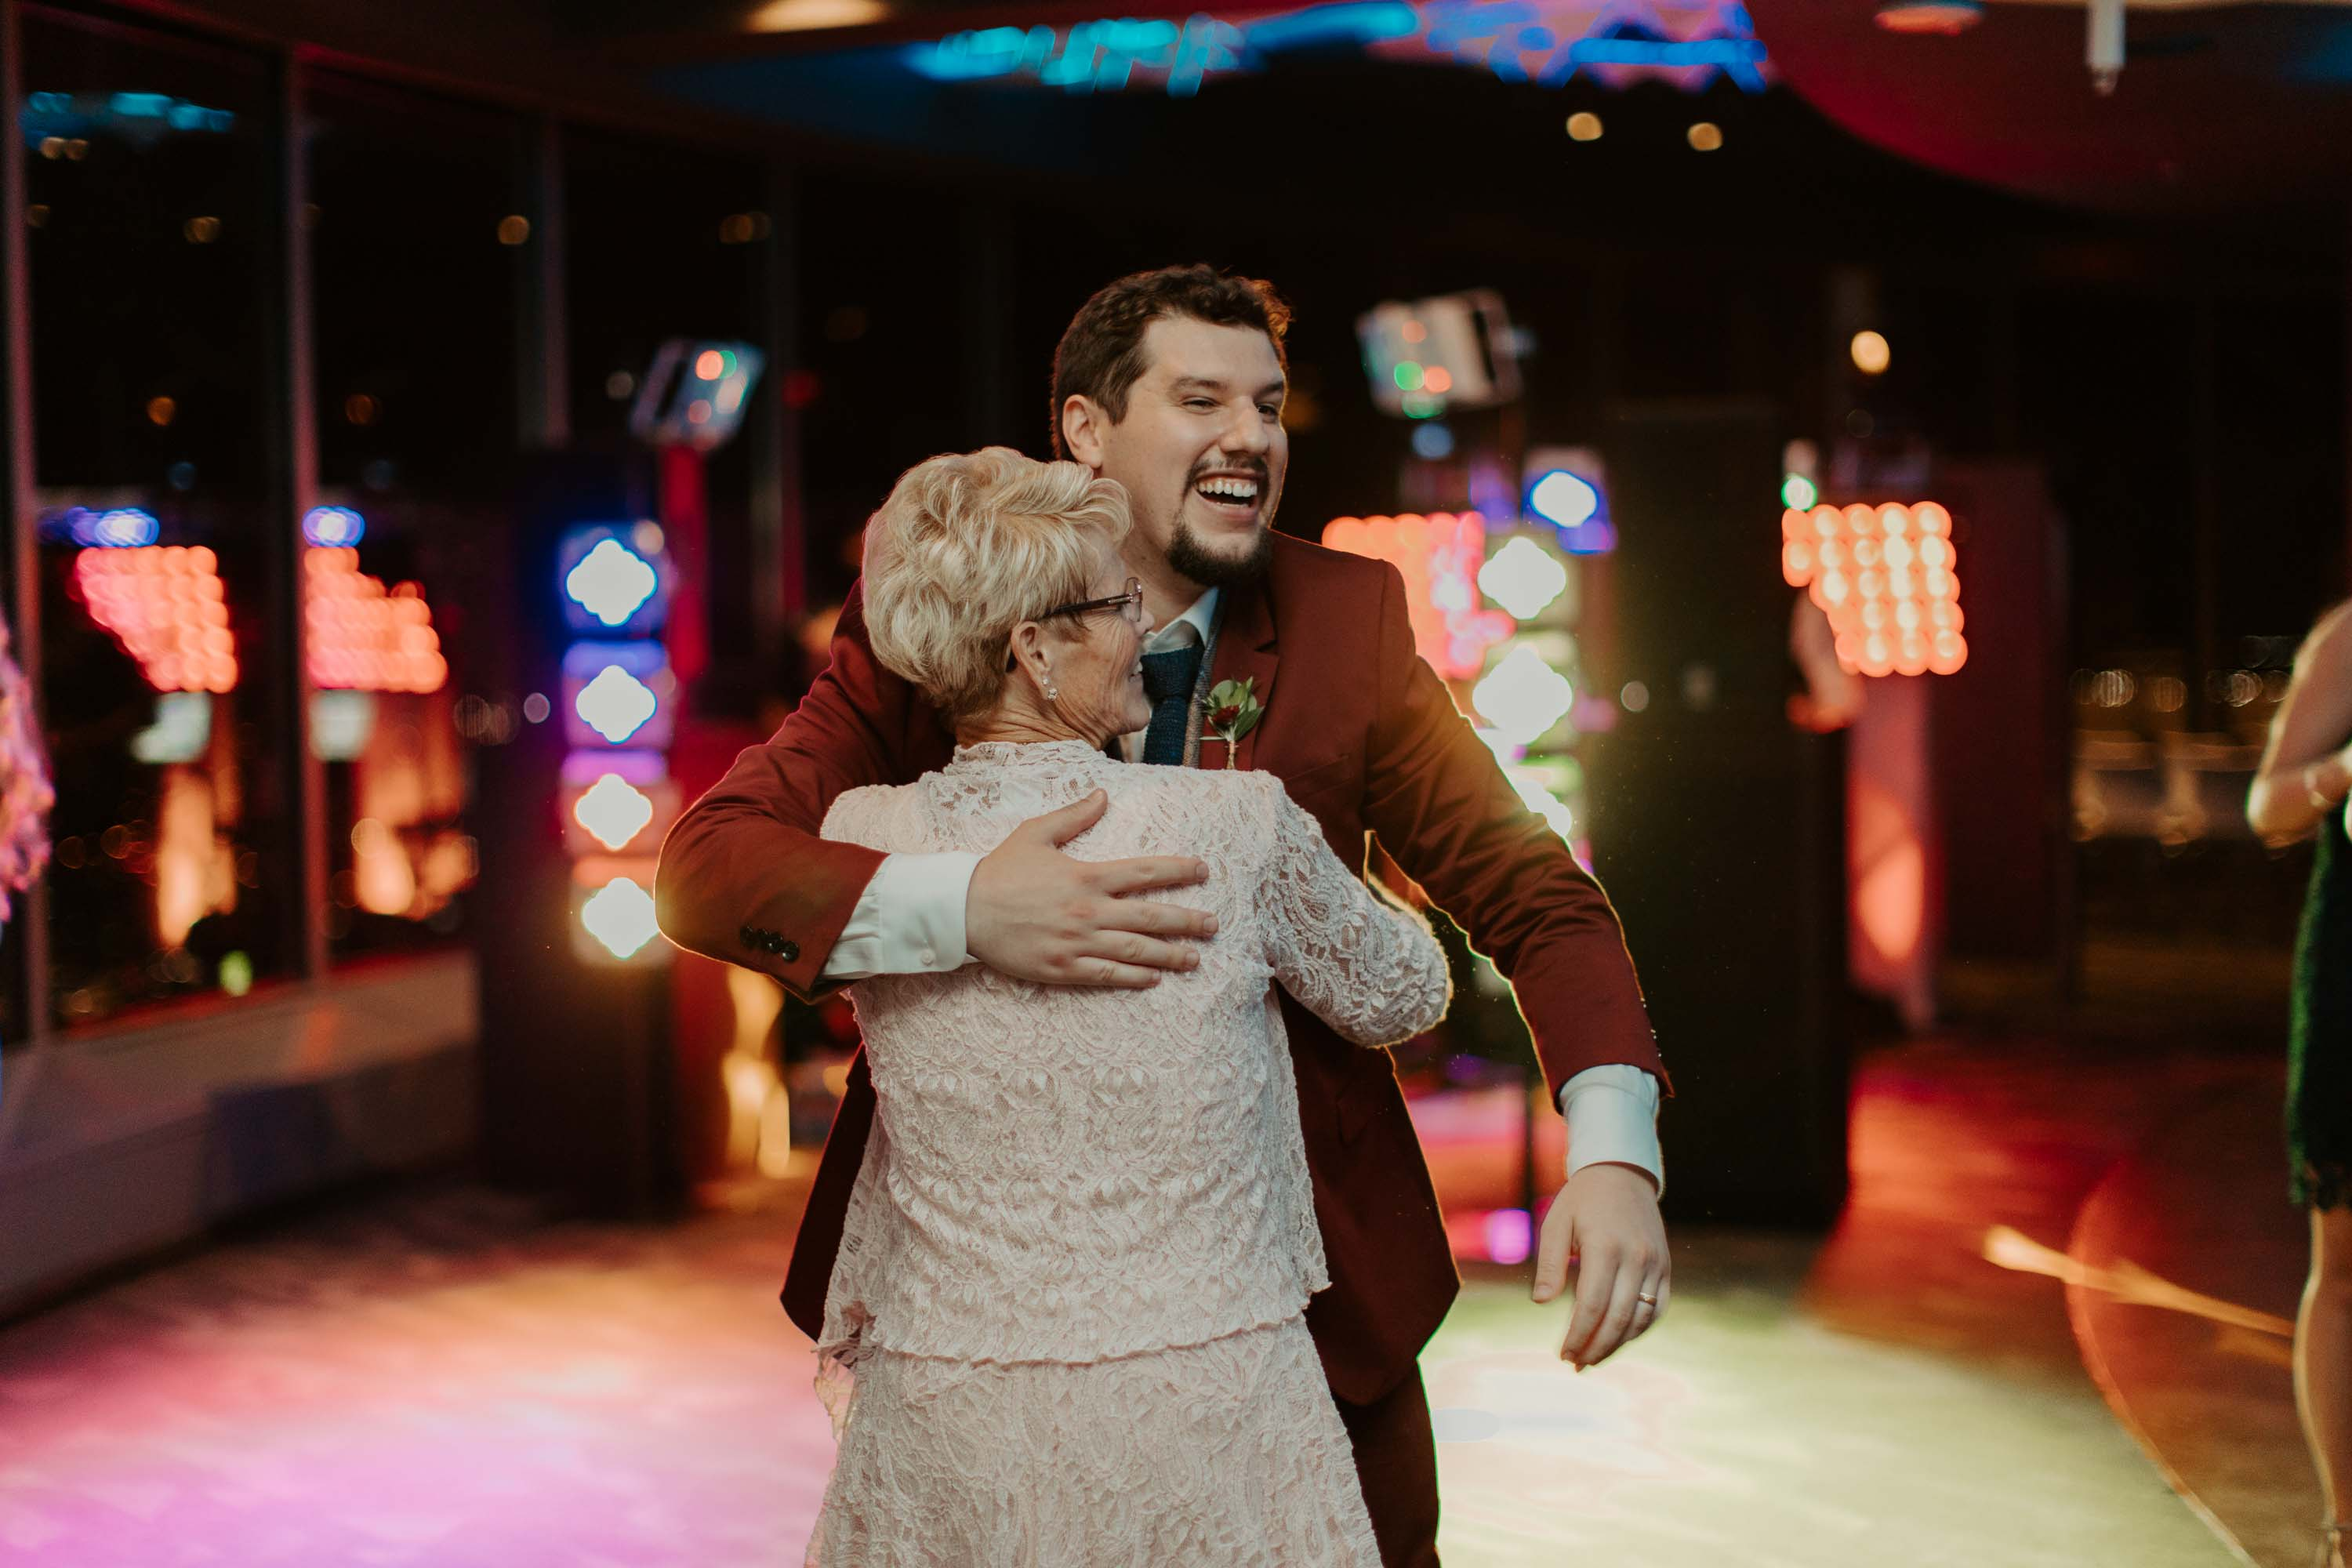 Groom dancing with family at wedding reception